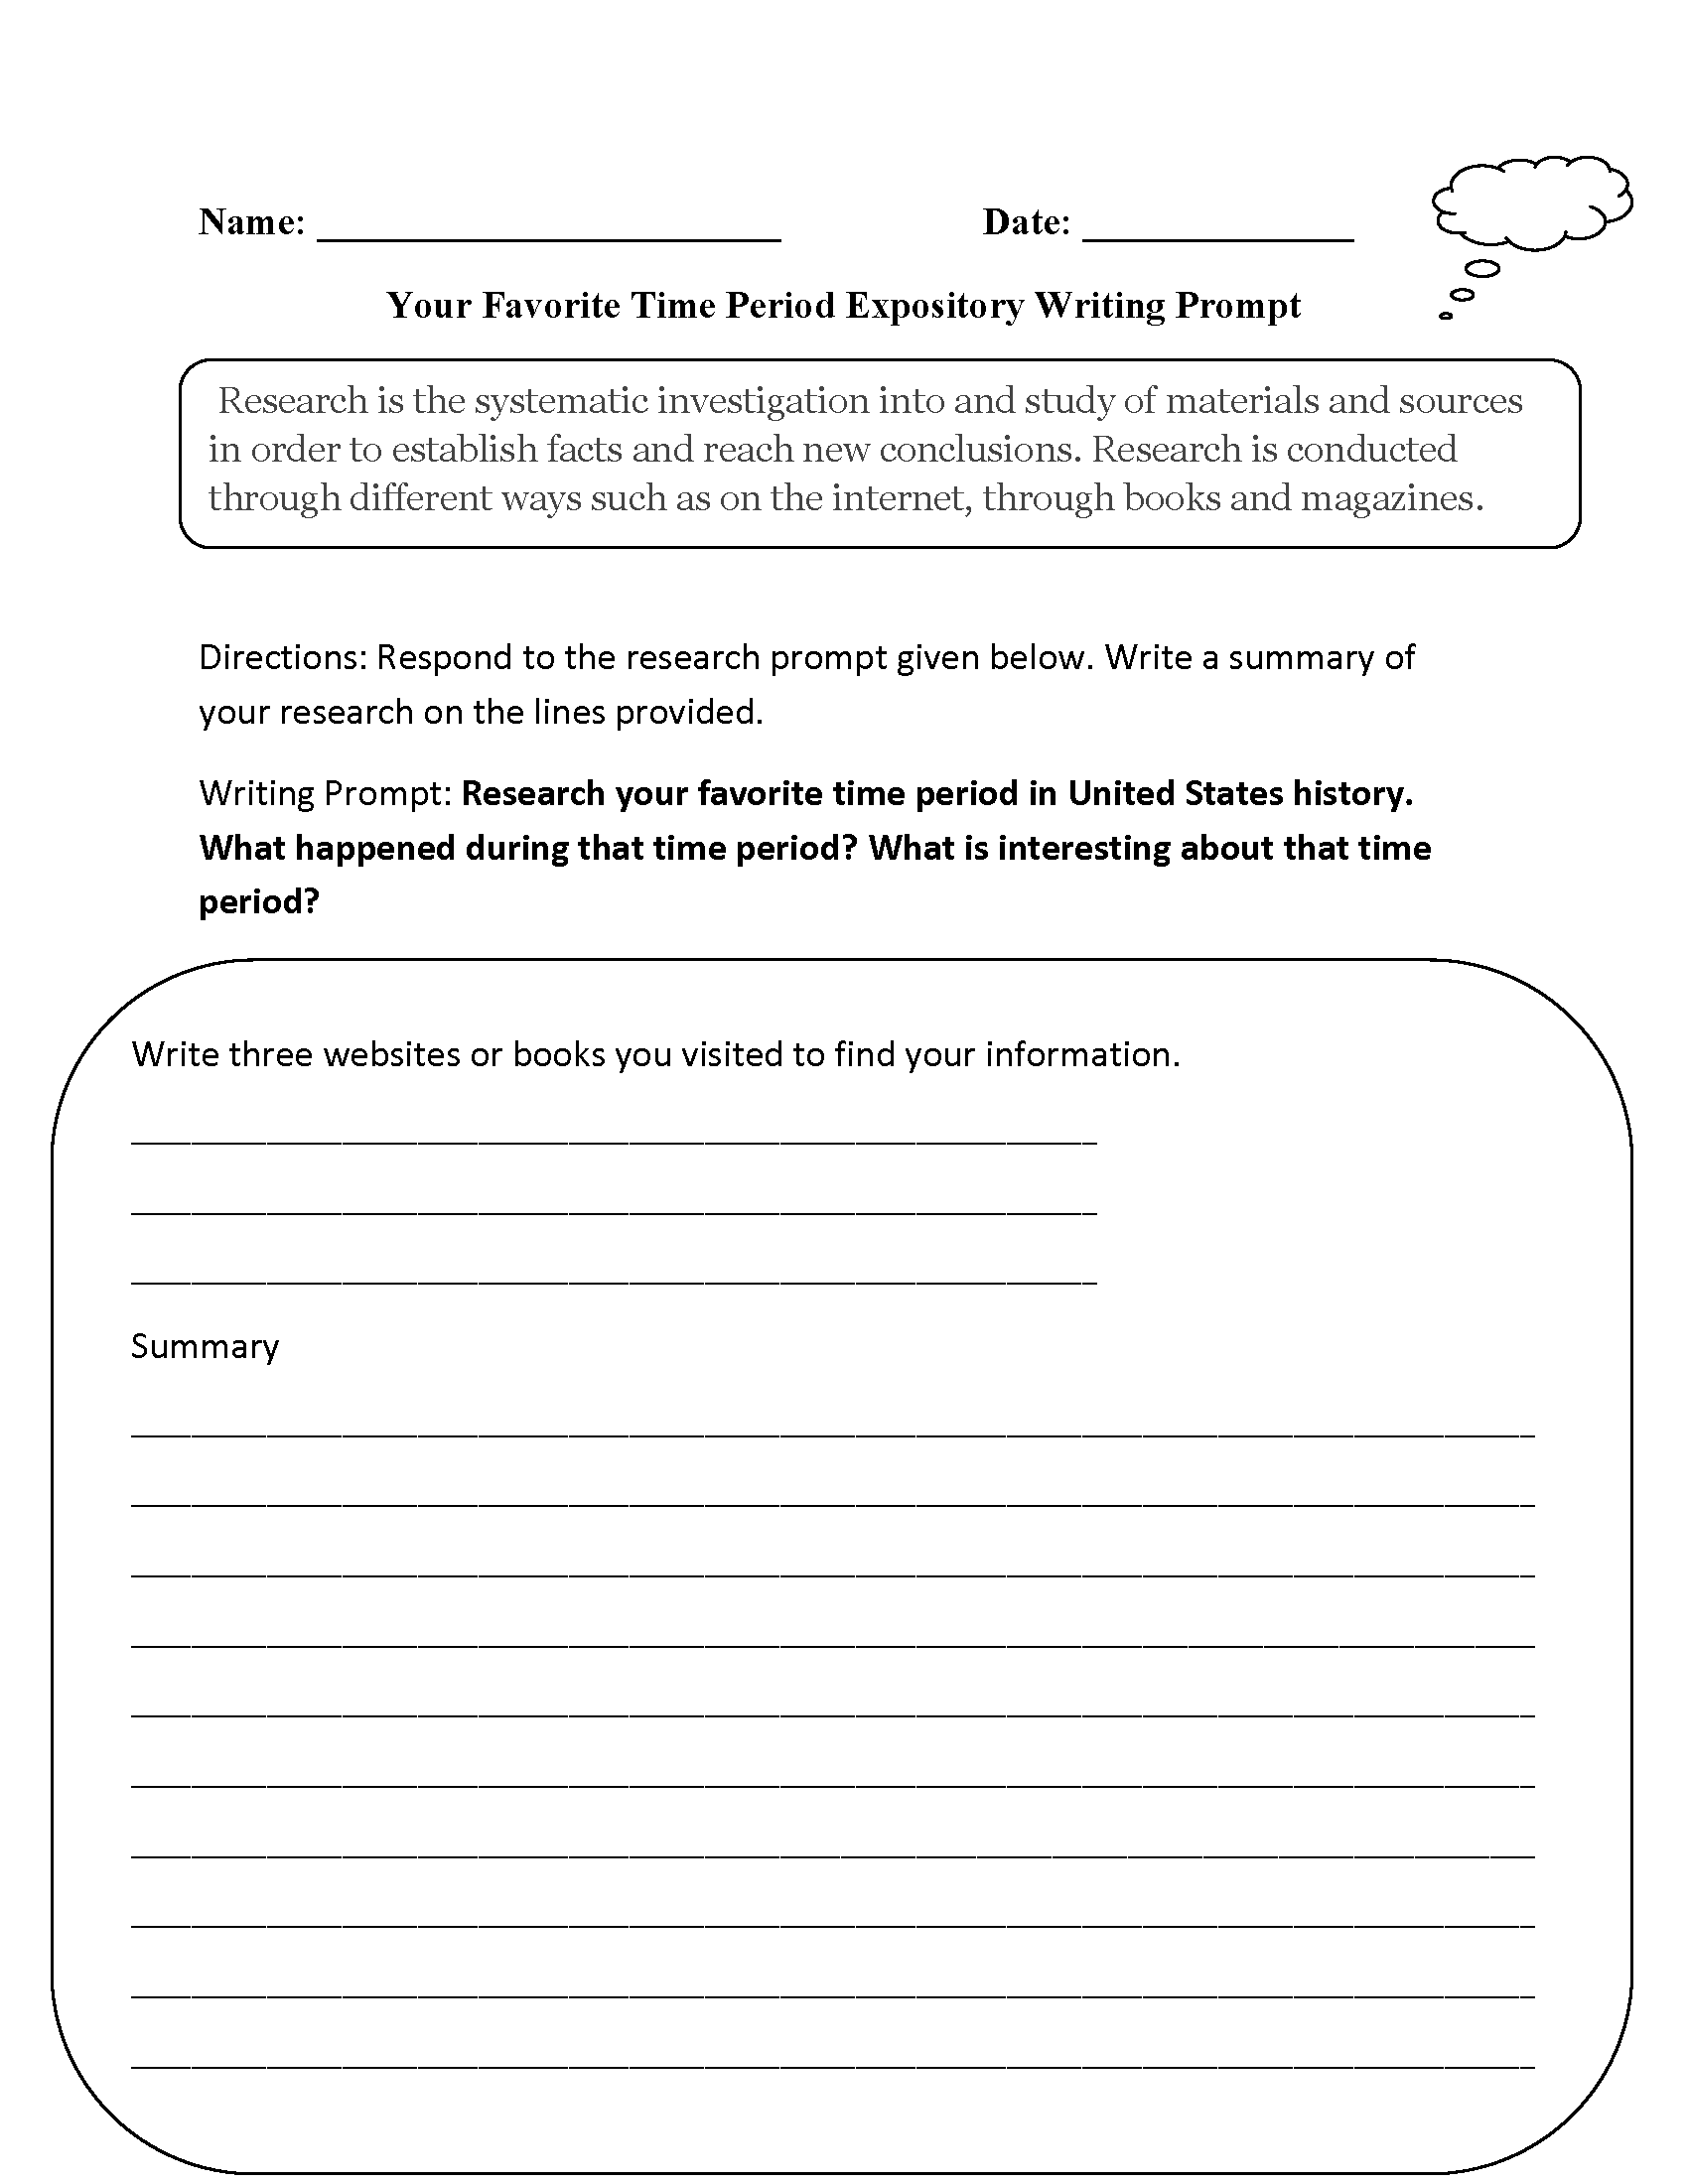 informative essay rubric 6th grade Specific nouns and action verbs make the essay clear and informative unfamiliar  terms are defined some nouns and verbs could be more specific unfamiliar.